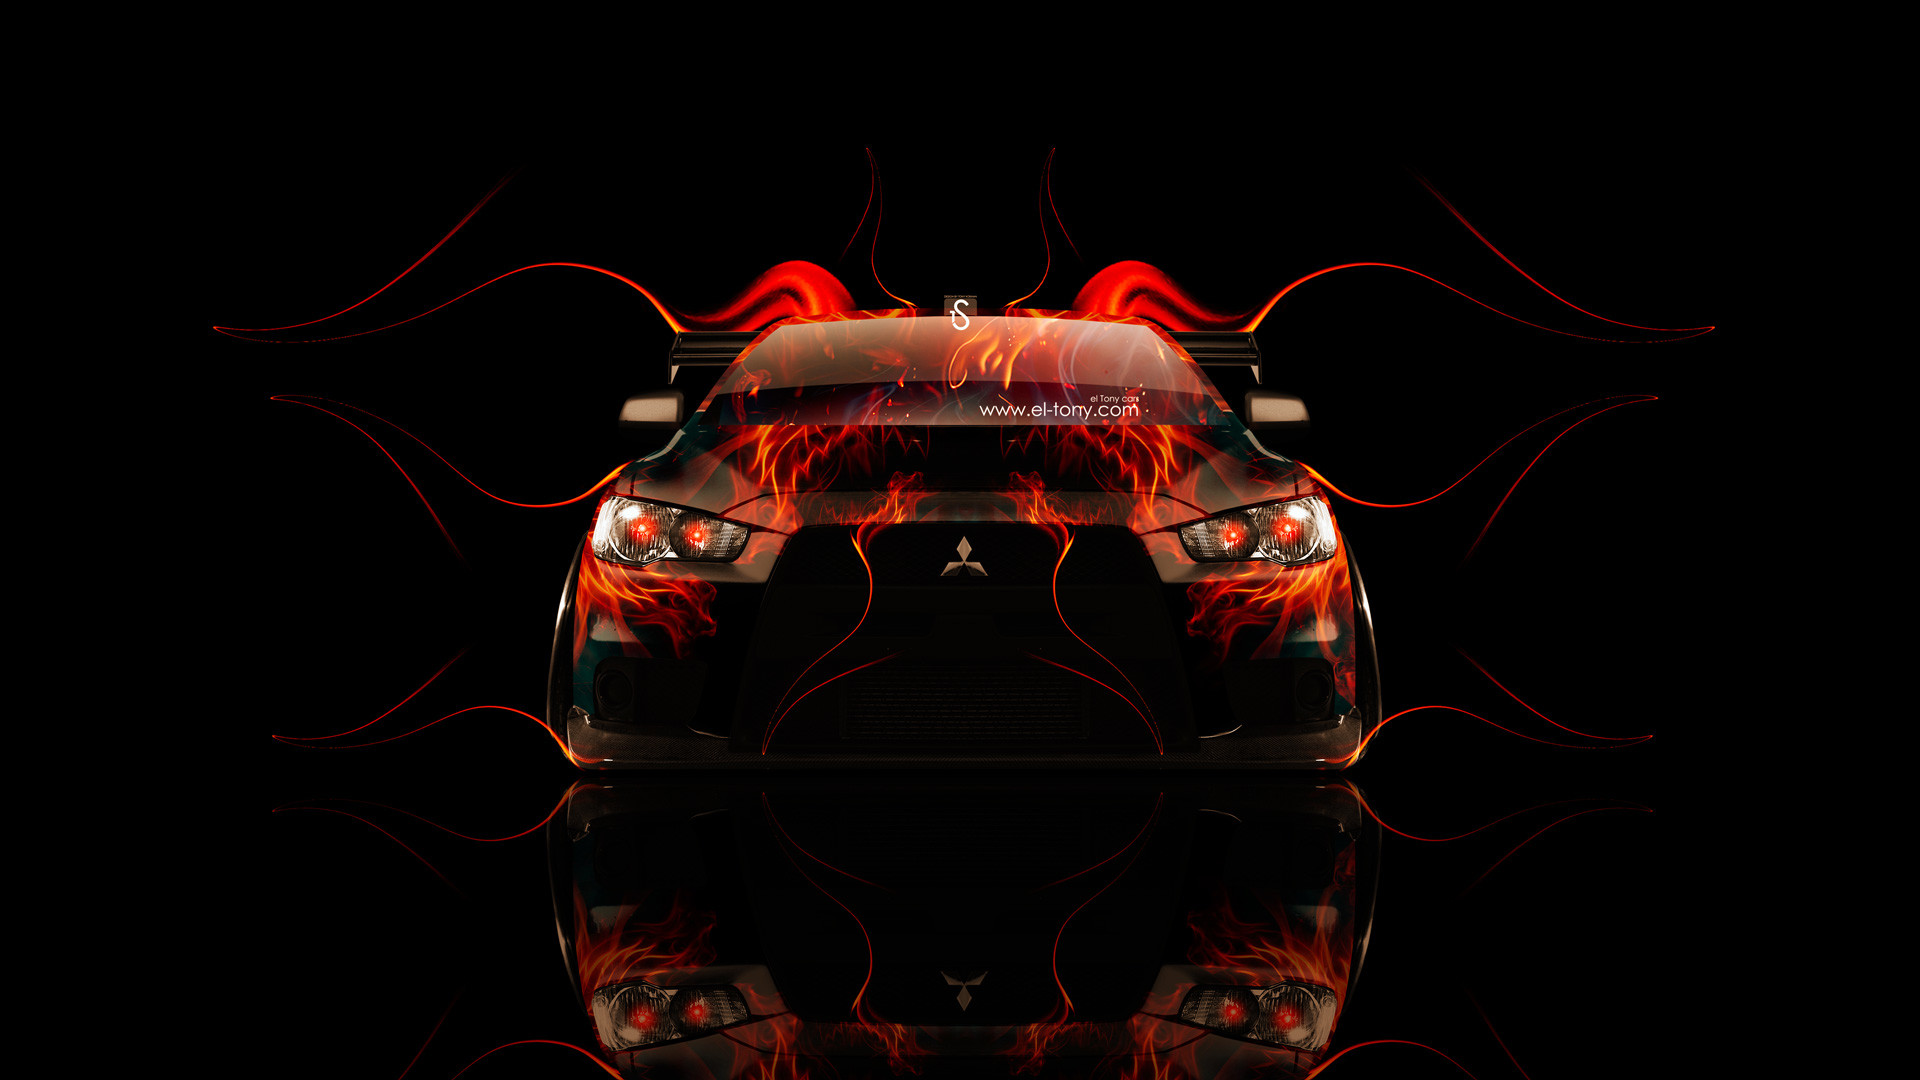 Res: 1920x1080, Mitsubishi-Lancer-Evolution-X-Tuning-Front-Fire-Car-